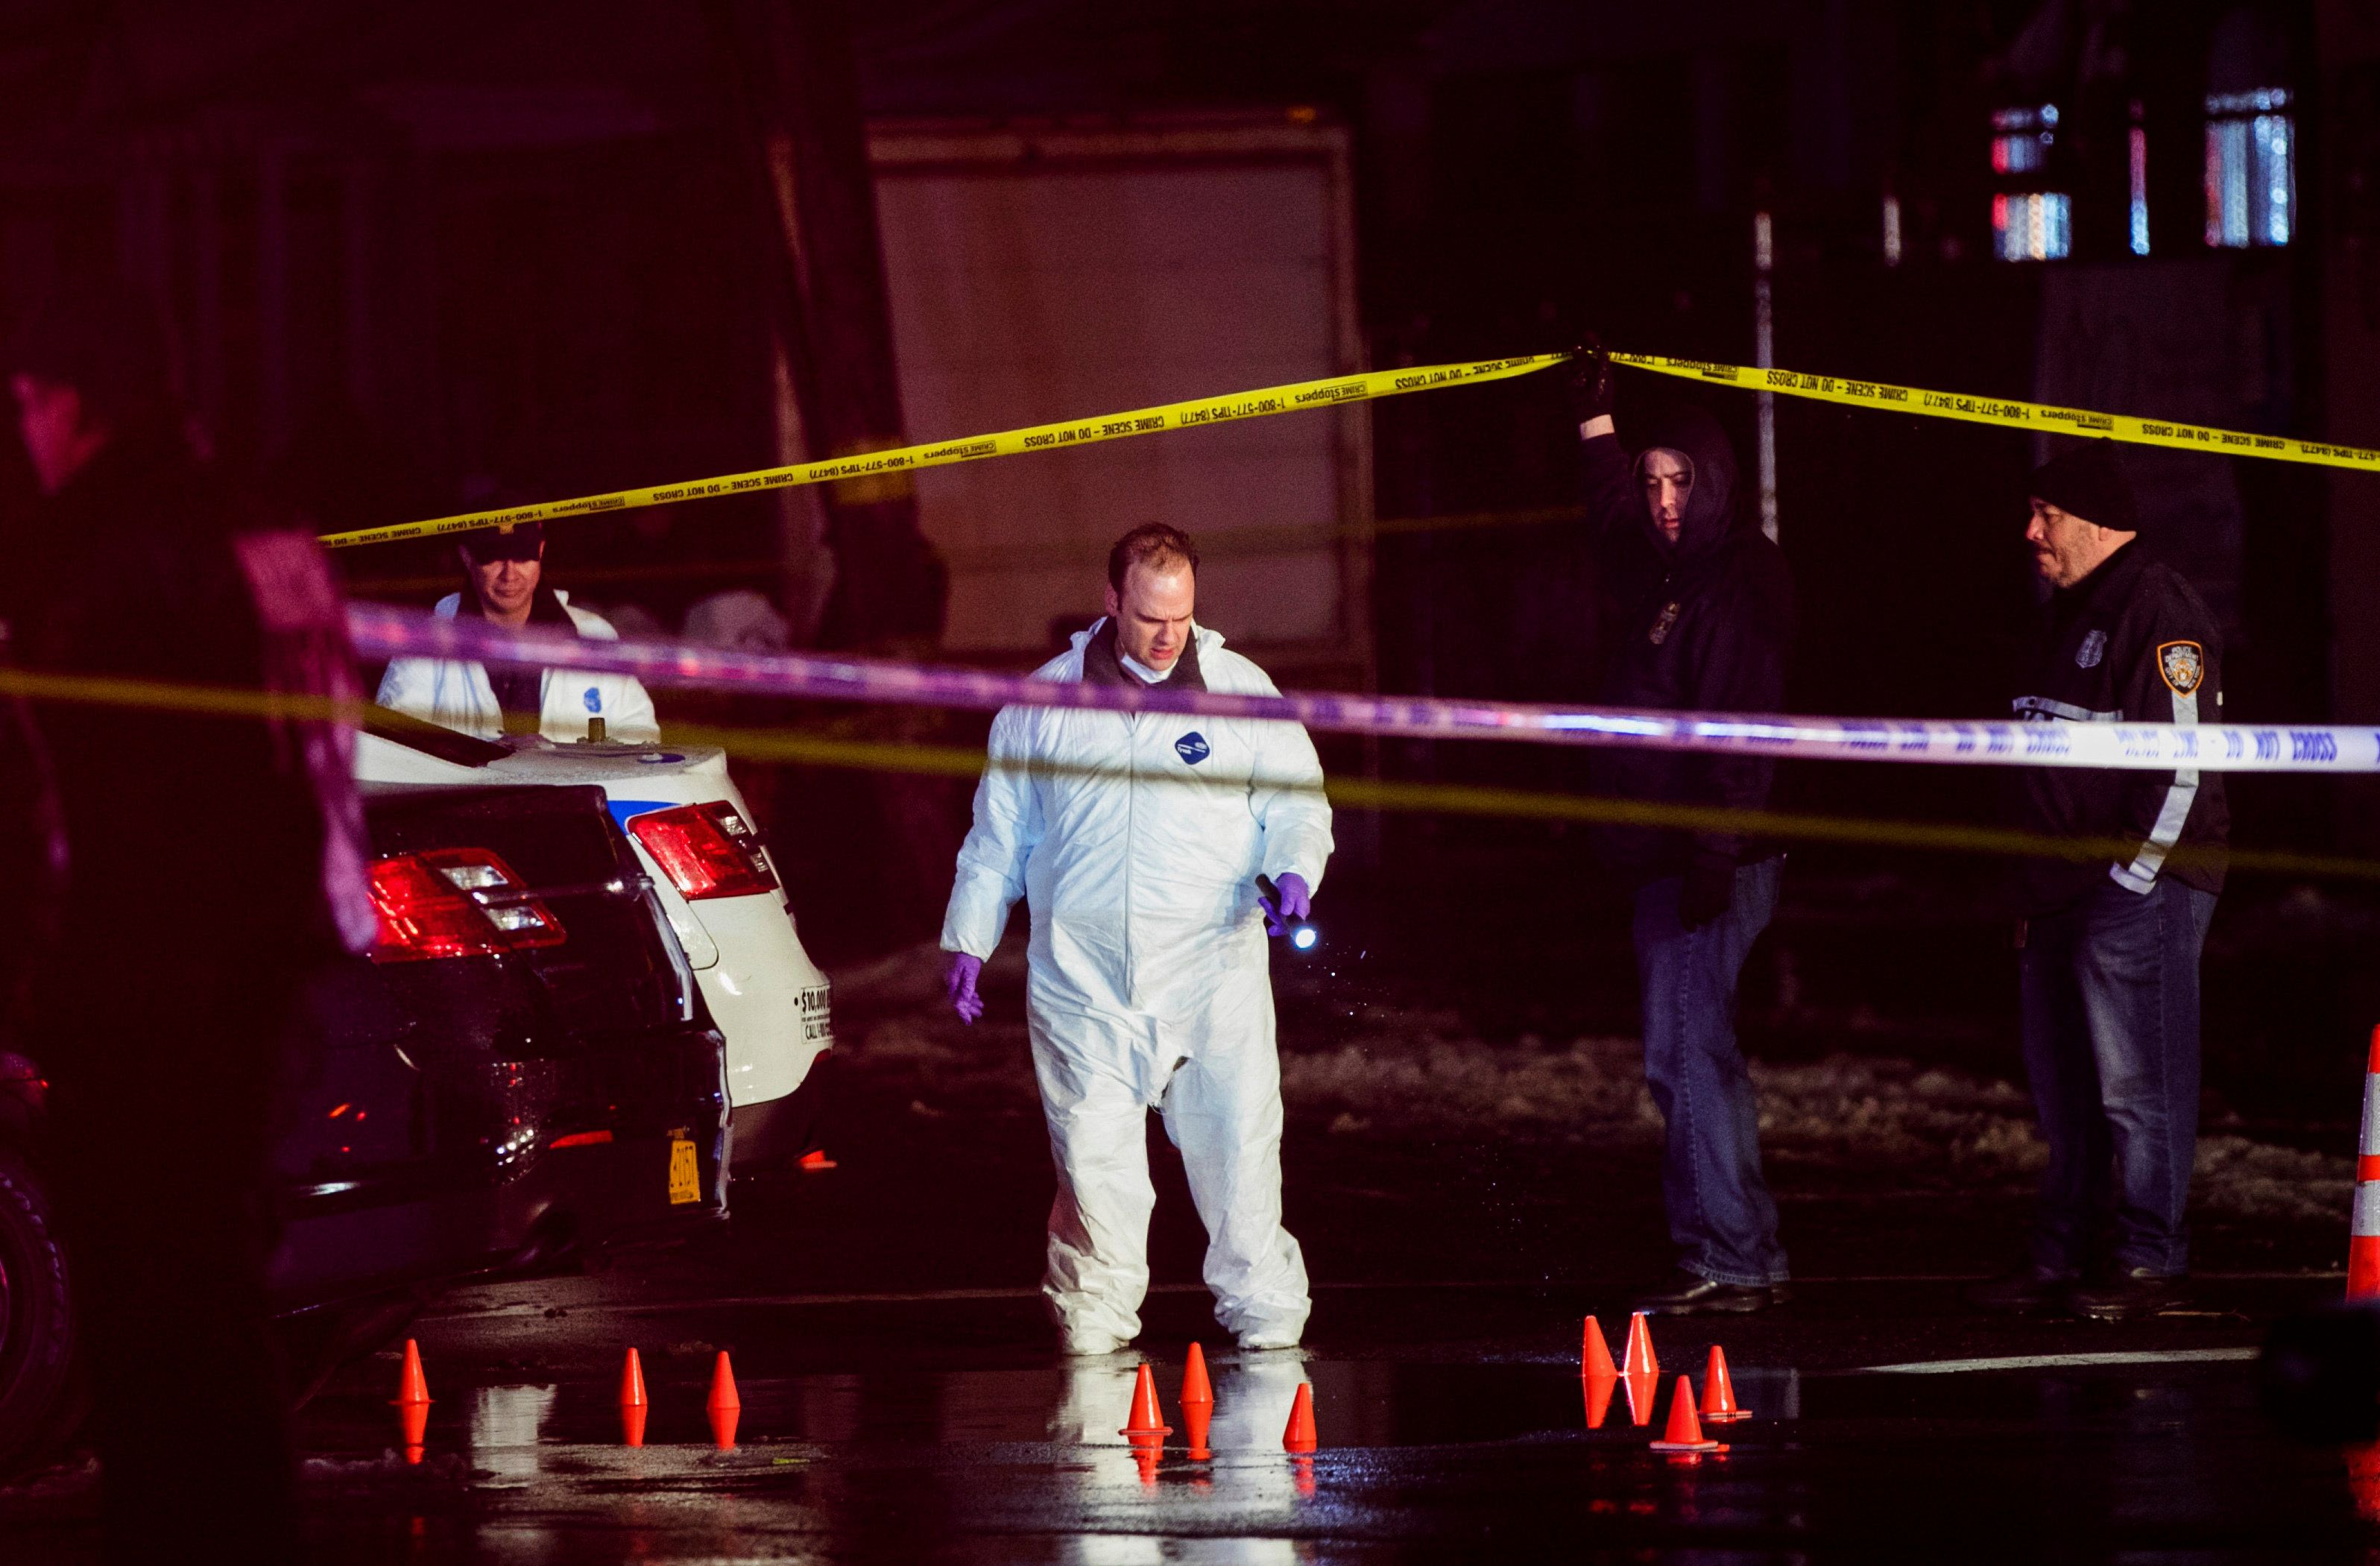 Investigators look over the area after New York City police officers were shot while responding to a robbery at a T-Mob